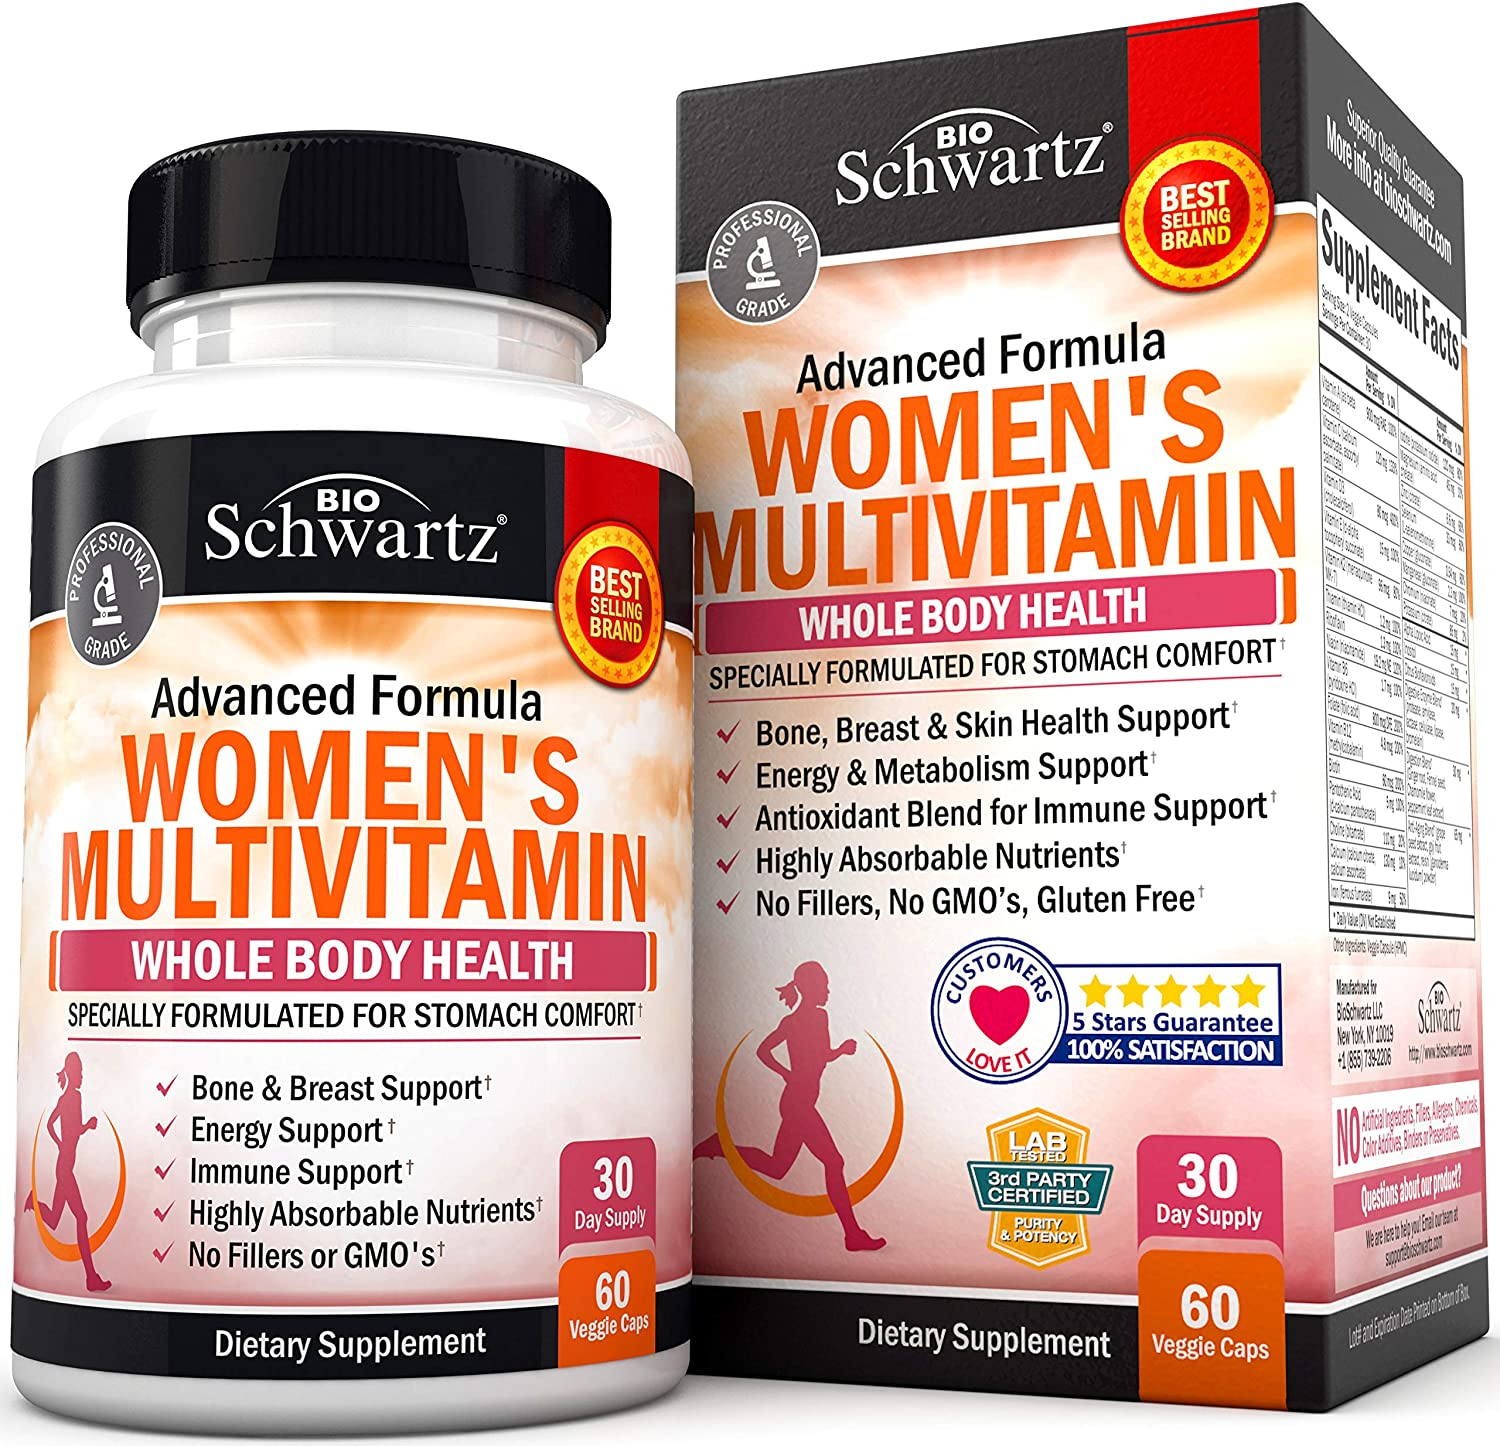 Multivitamin for Women - Energy, Immune & Joint Support Supplement - with Vitamin D3 for Skin, Bone and Breast Support - Once Daily - Formulated for Stomach Comfort - Promotes Whole Body Health